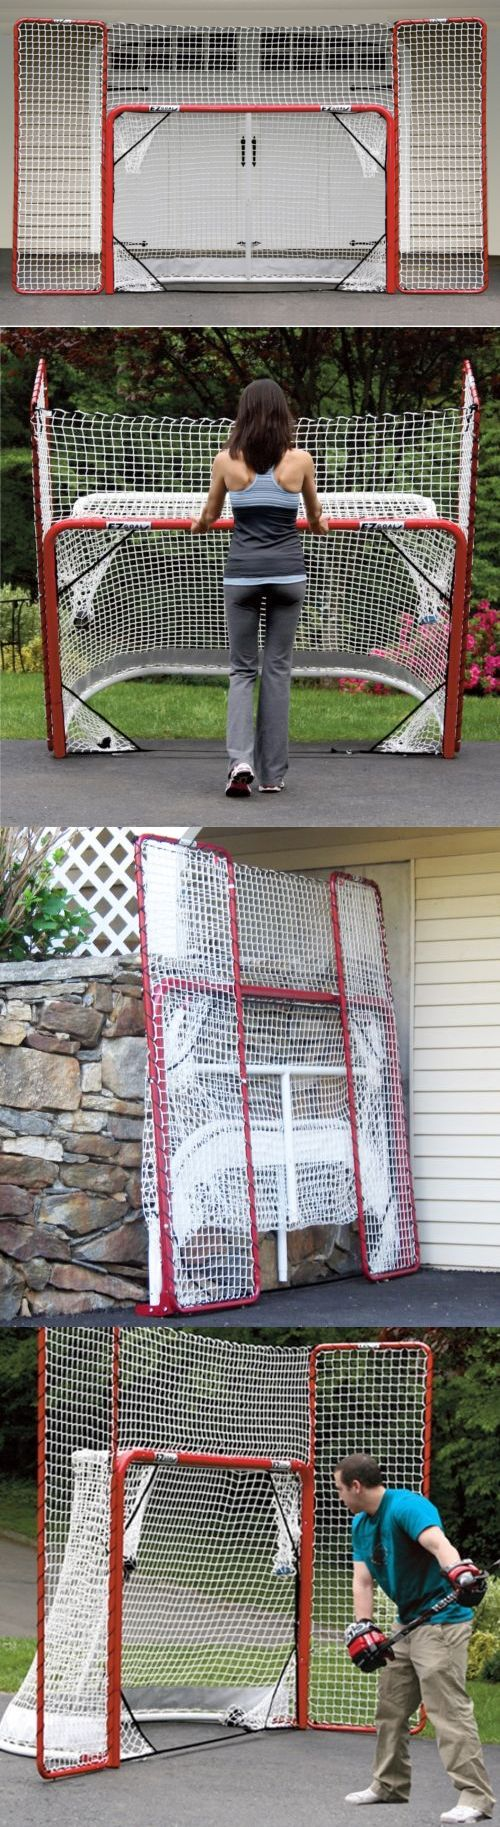 Goals and Nets 165936: Ezgoal Street Hockey Folding Pro Net W Backstop And Targets Red White Practise -> BUY IT NOW ONLY: $173.99 on eBay!